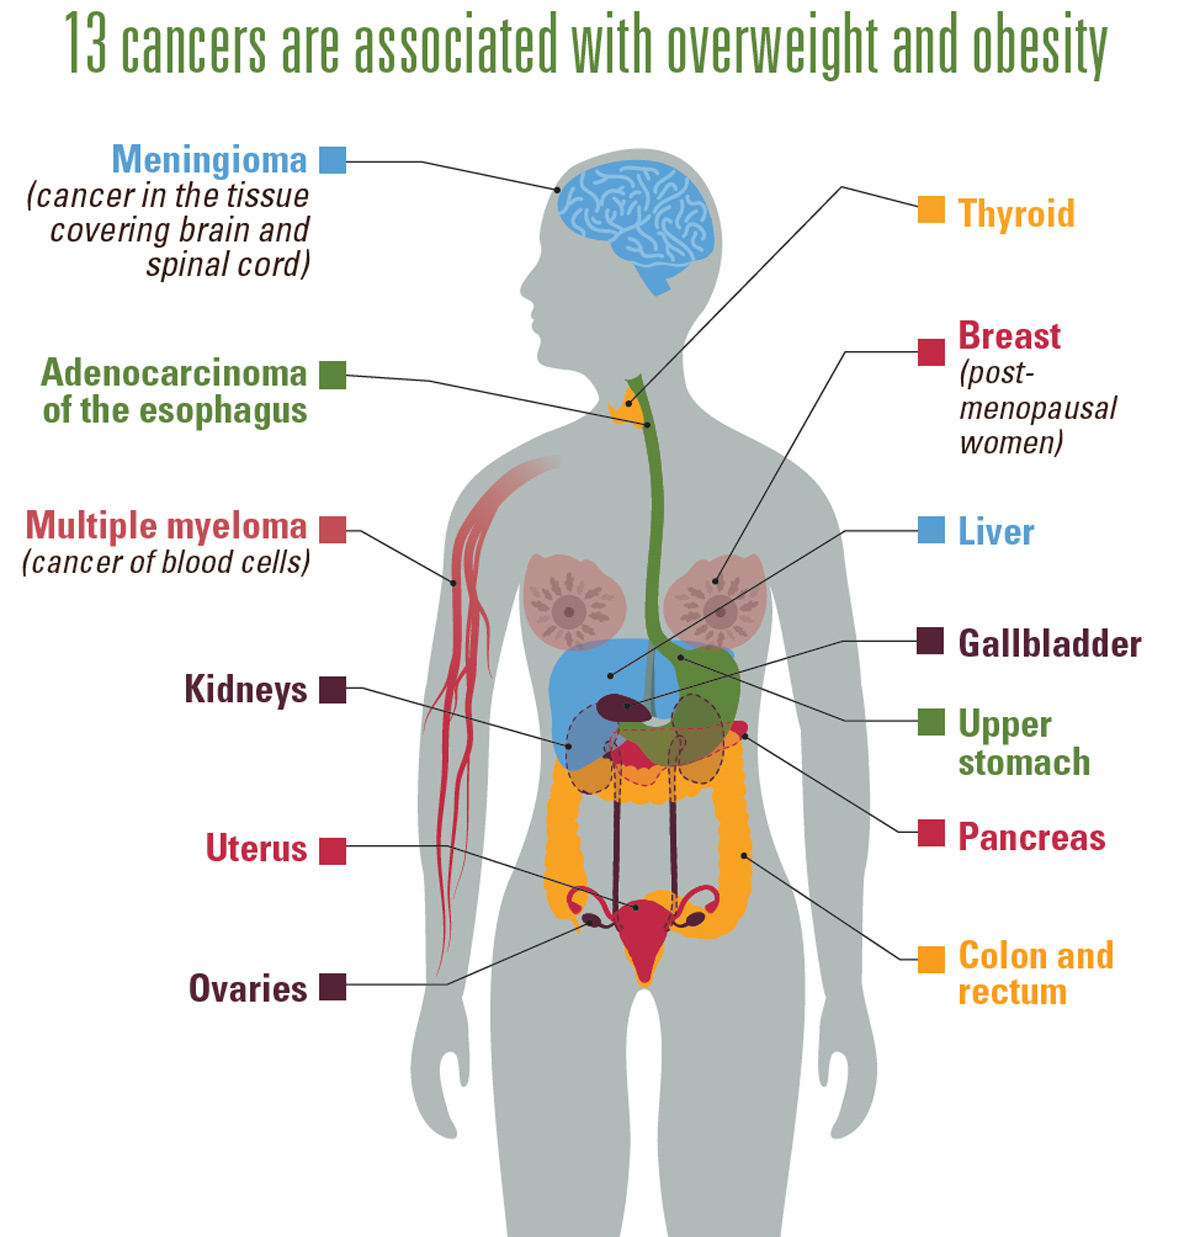 Graphic: 13 Cancers are associated with overweight and obesity